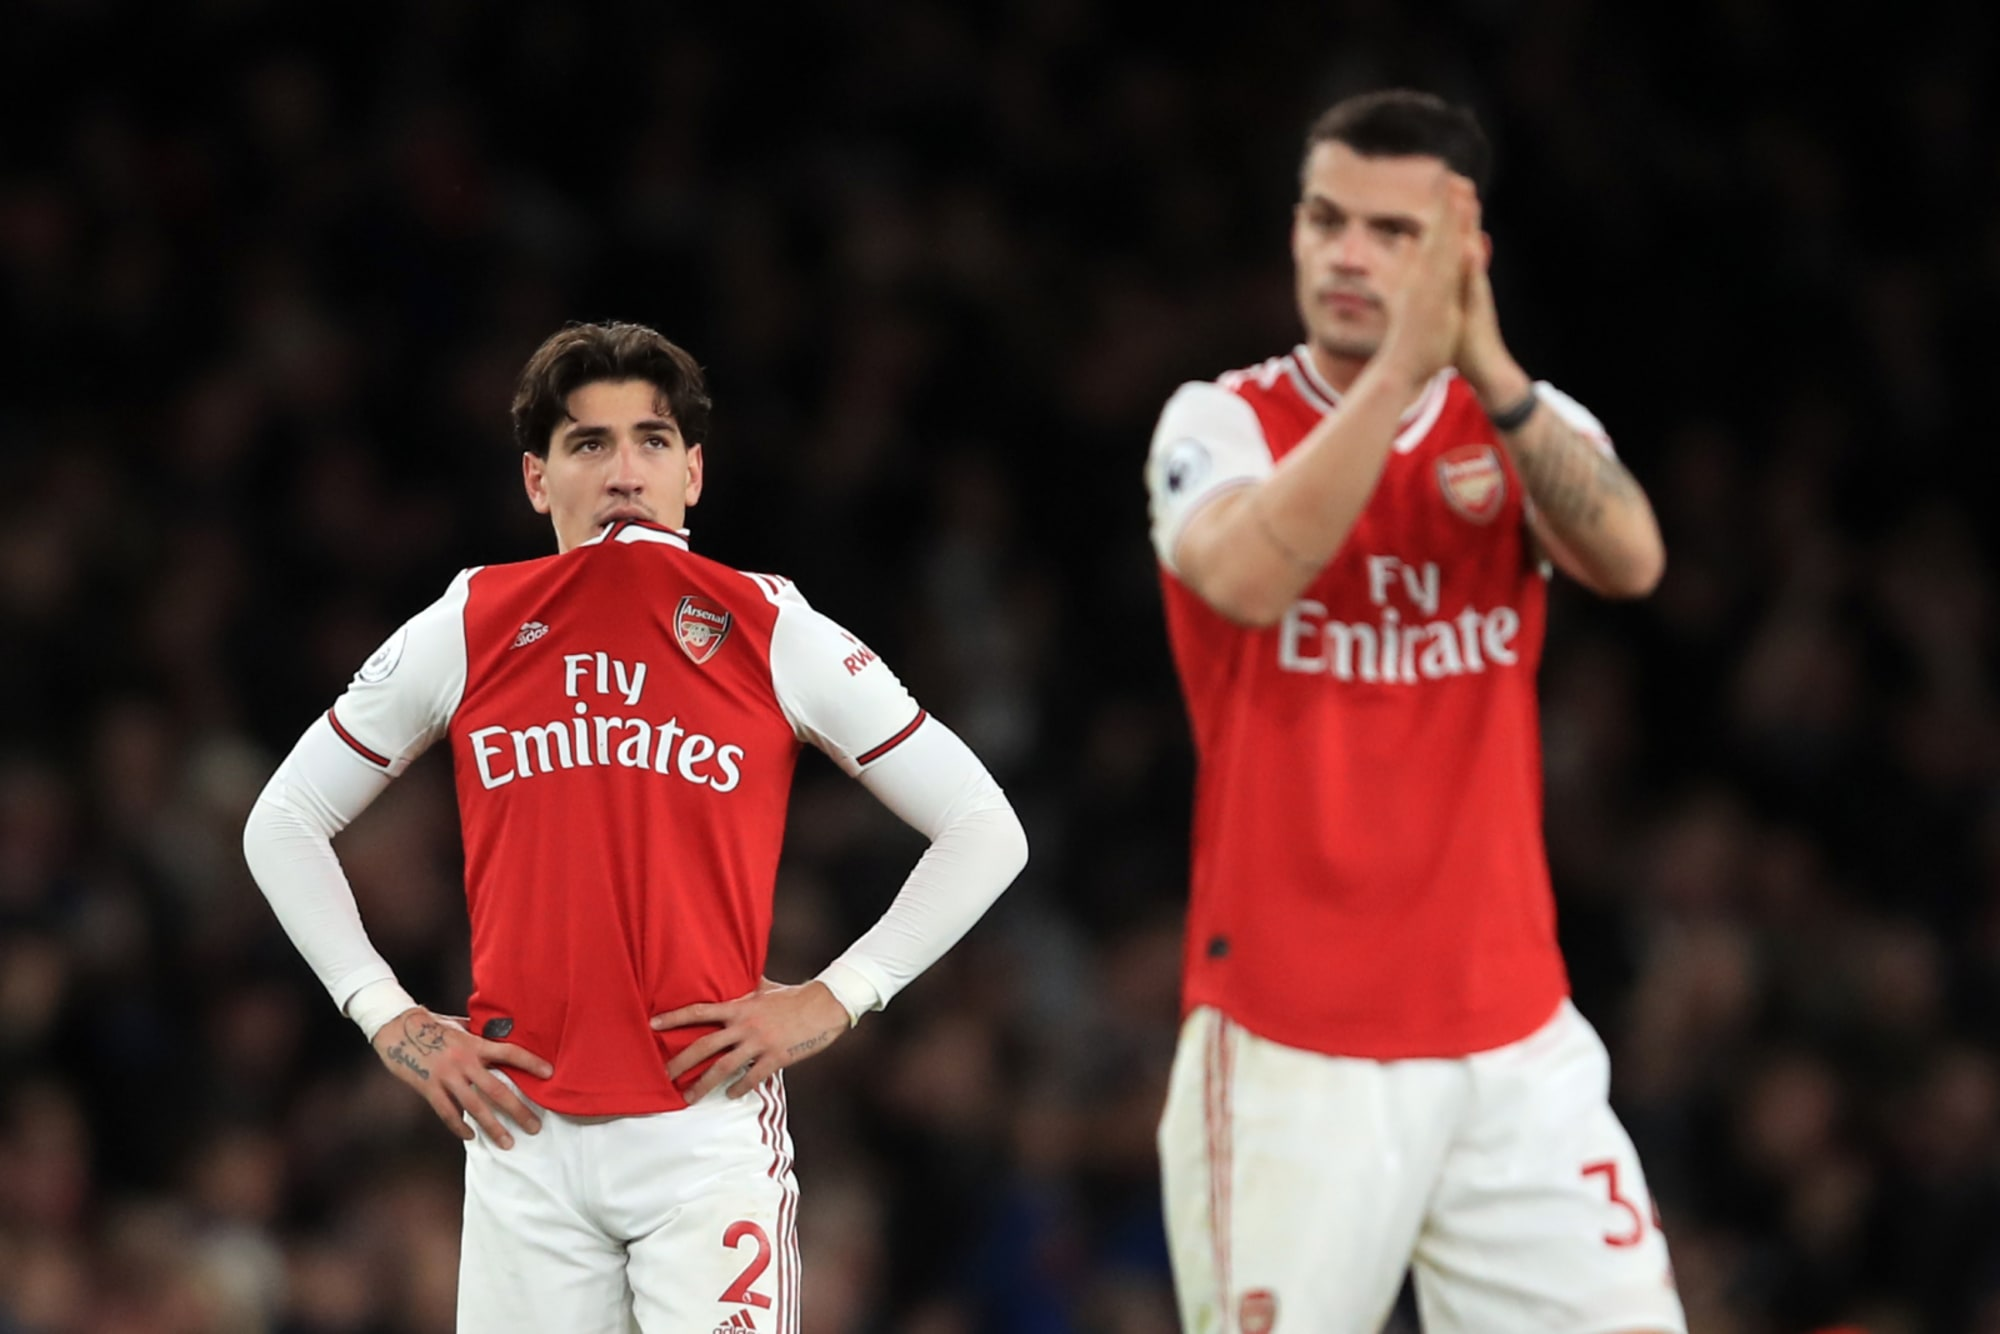 Arsenal Transfer News   Arsenal want a quick resolution as interest mounts in Xhaka and Bellerin